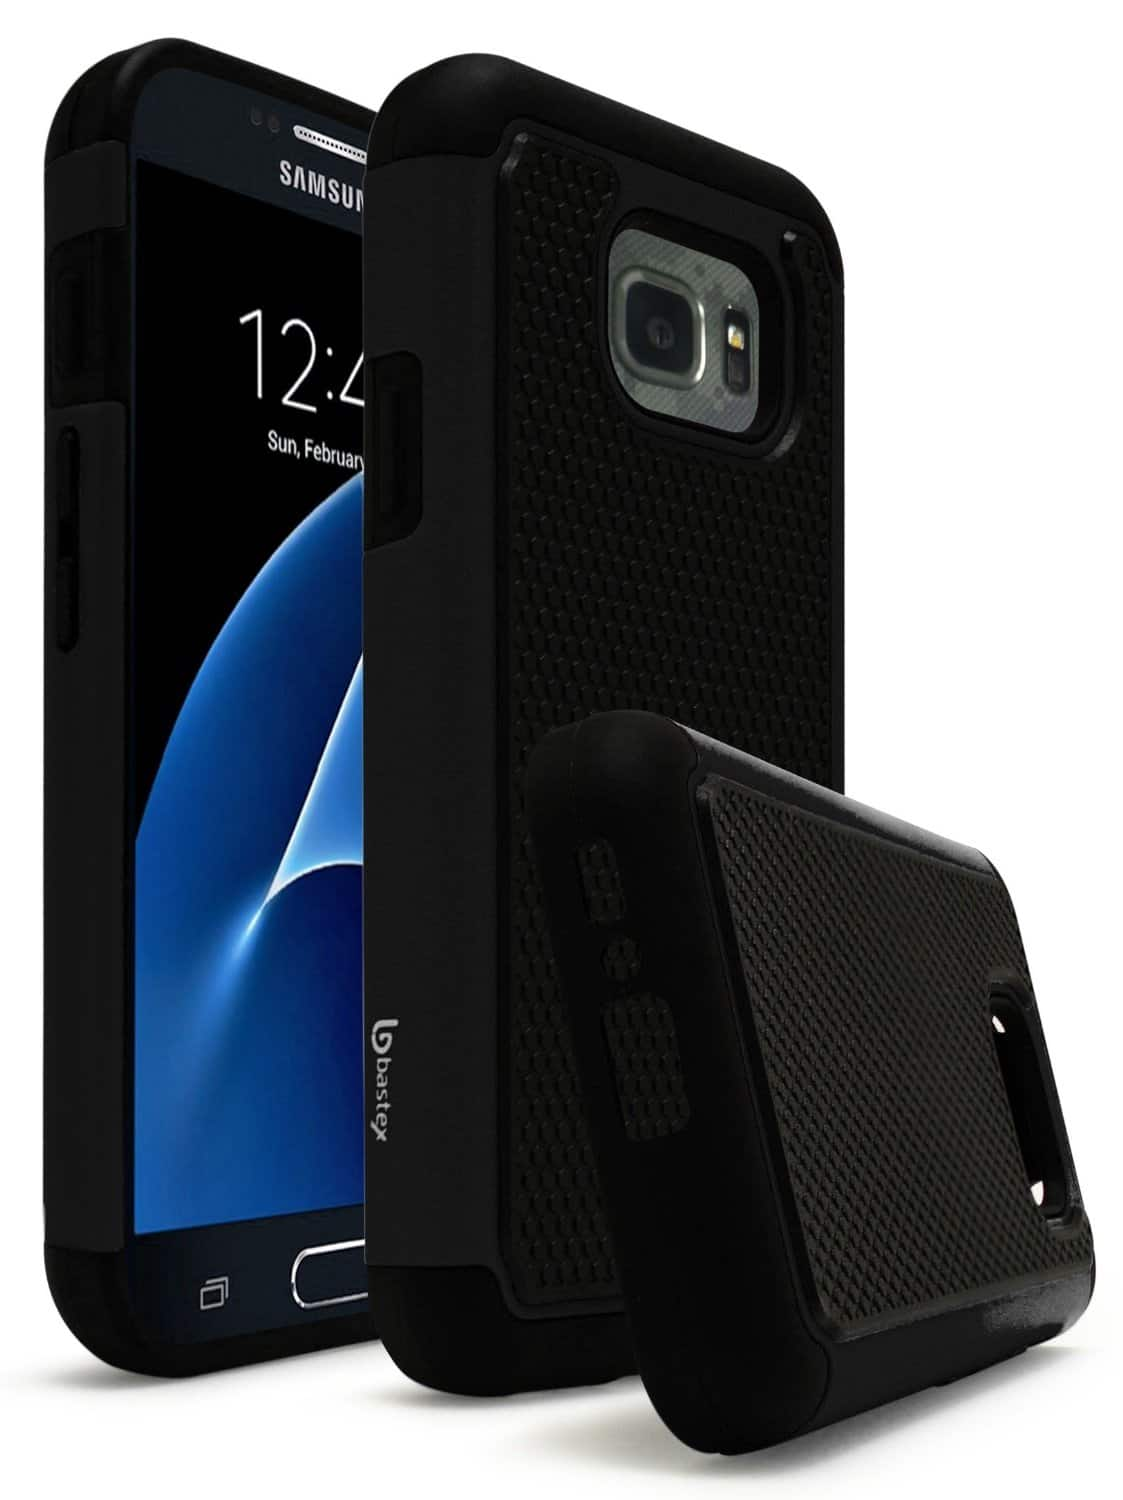 Samsung Galaxy S7 Active case any color $1 Shipped free